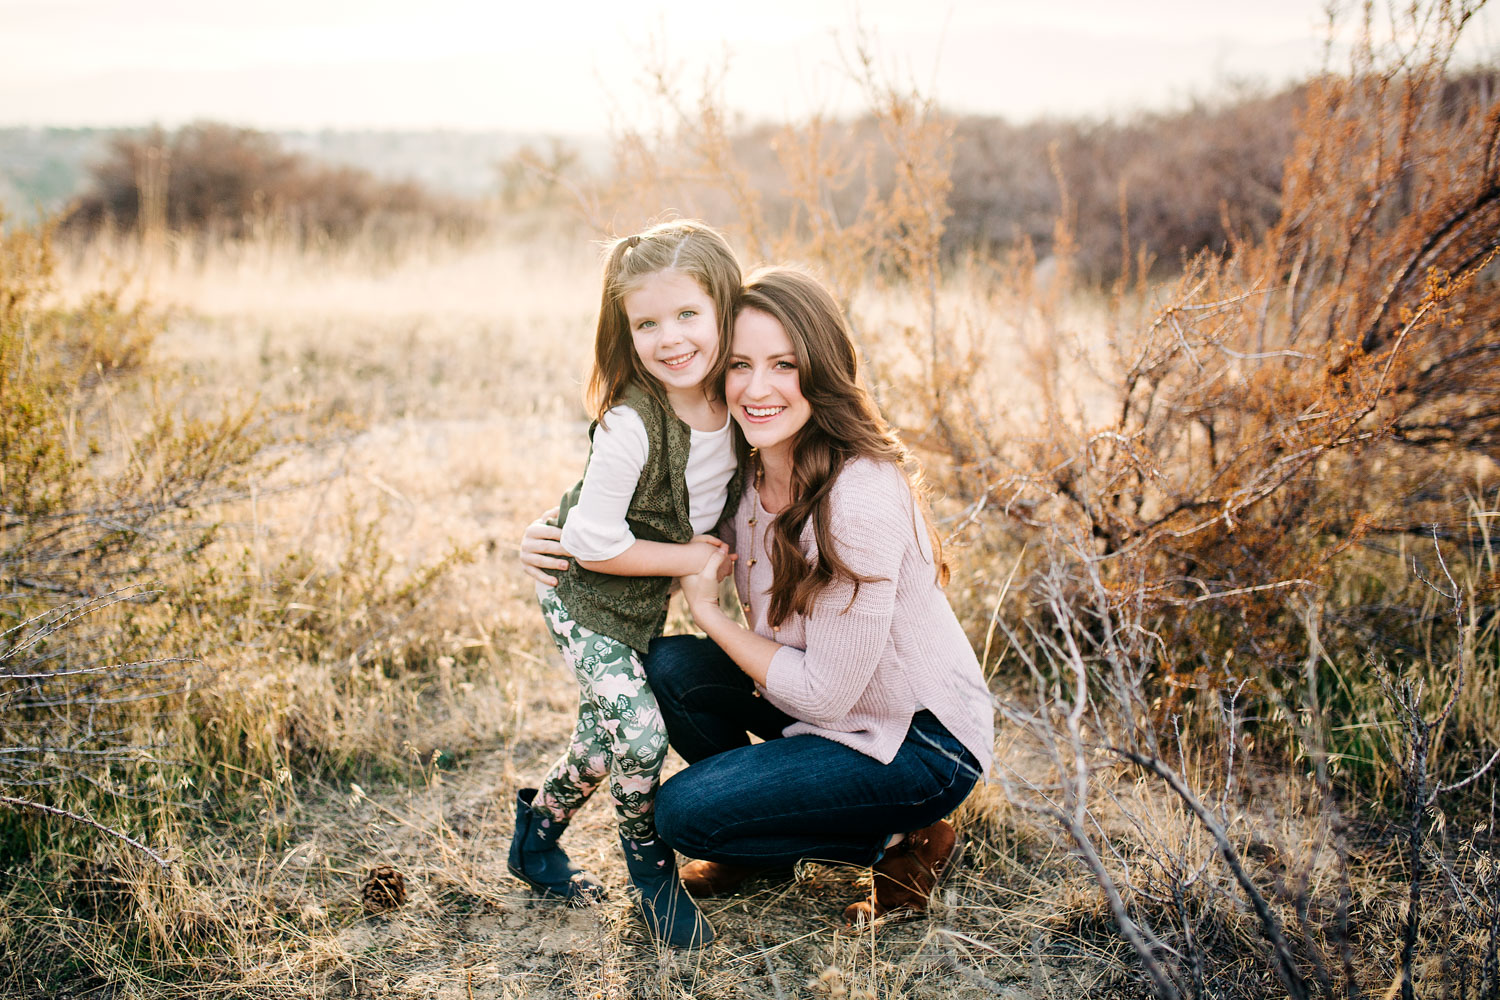 A mother and daughter hug together during a family photo shoot with Amy Wright Photography, who is based out of Roseville, California.